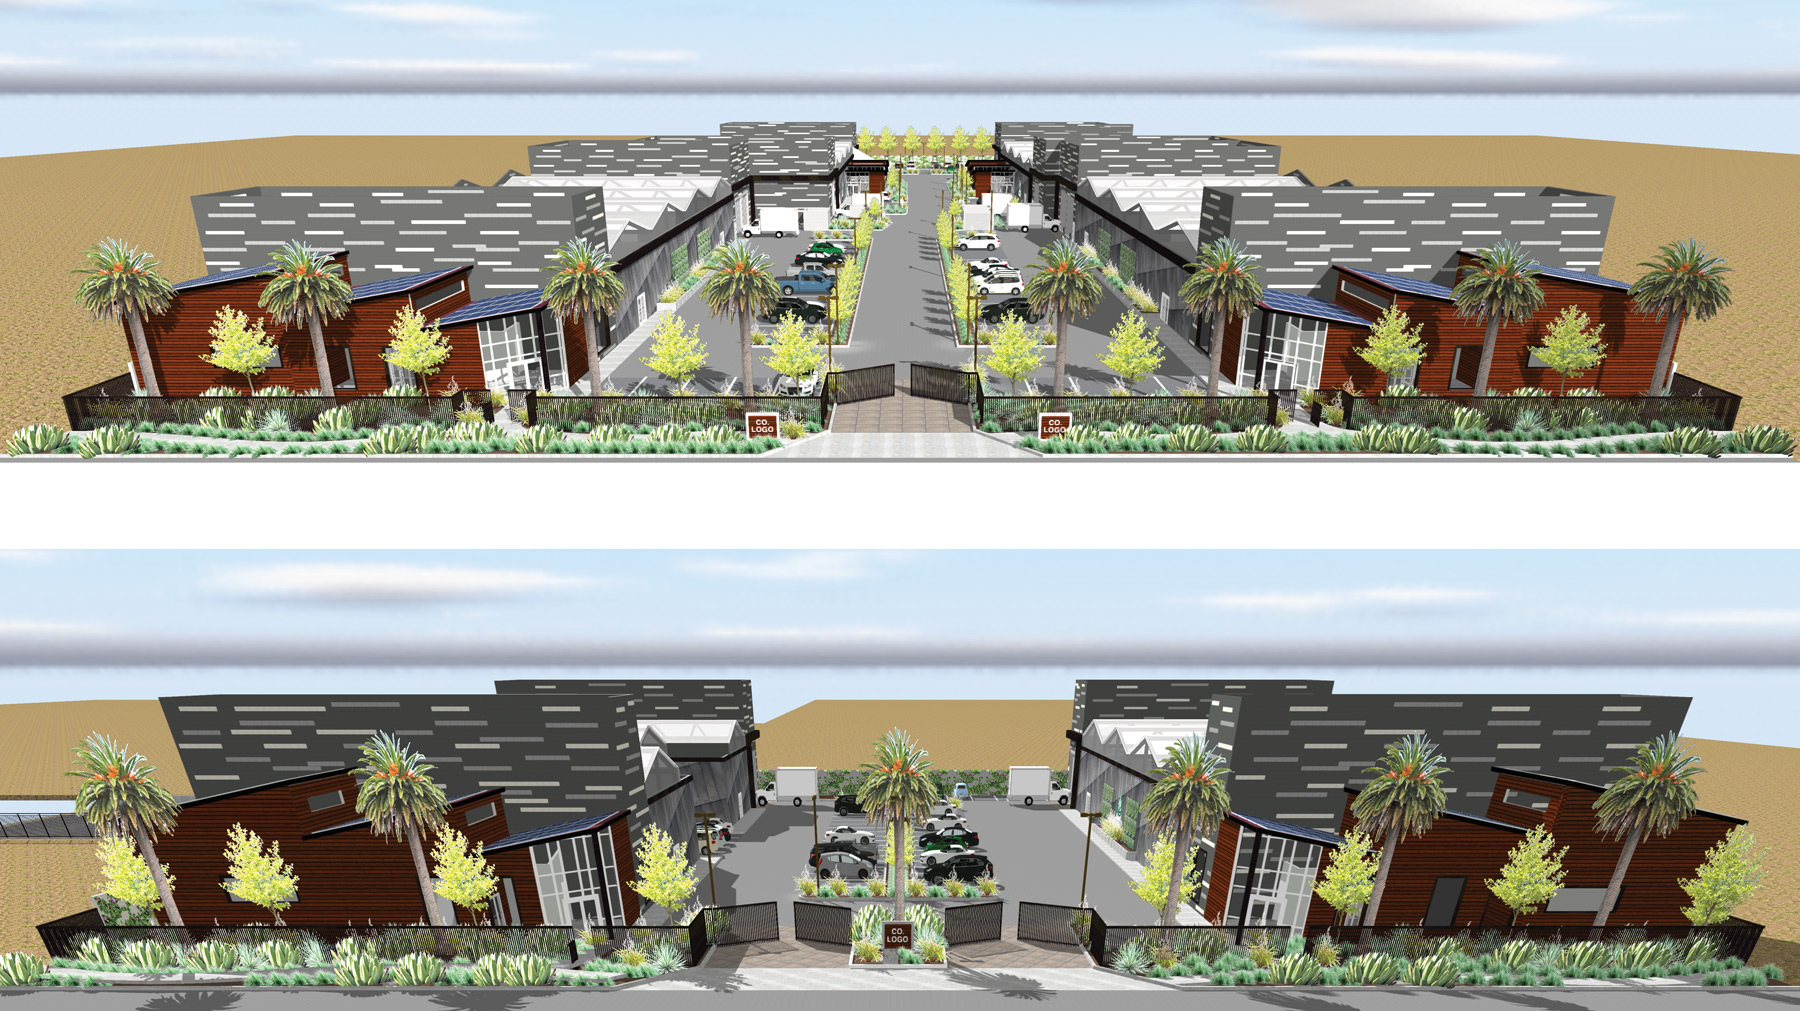 Huston Cannabis Campus Grover Beach CRSA Architecture